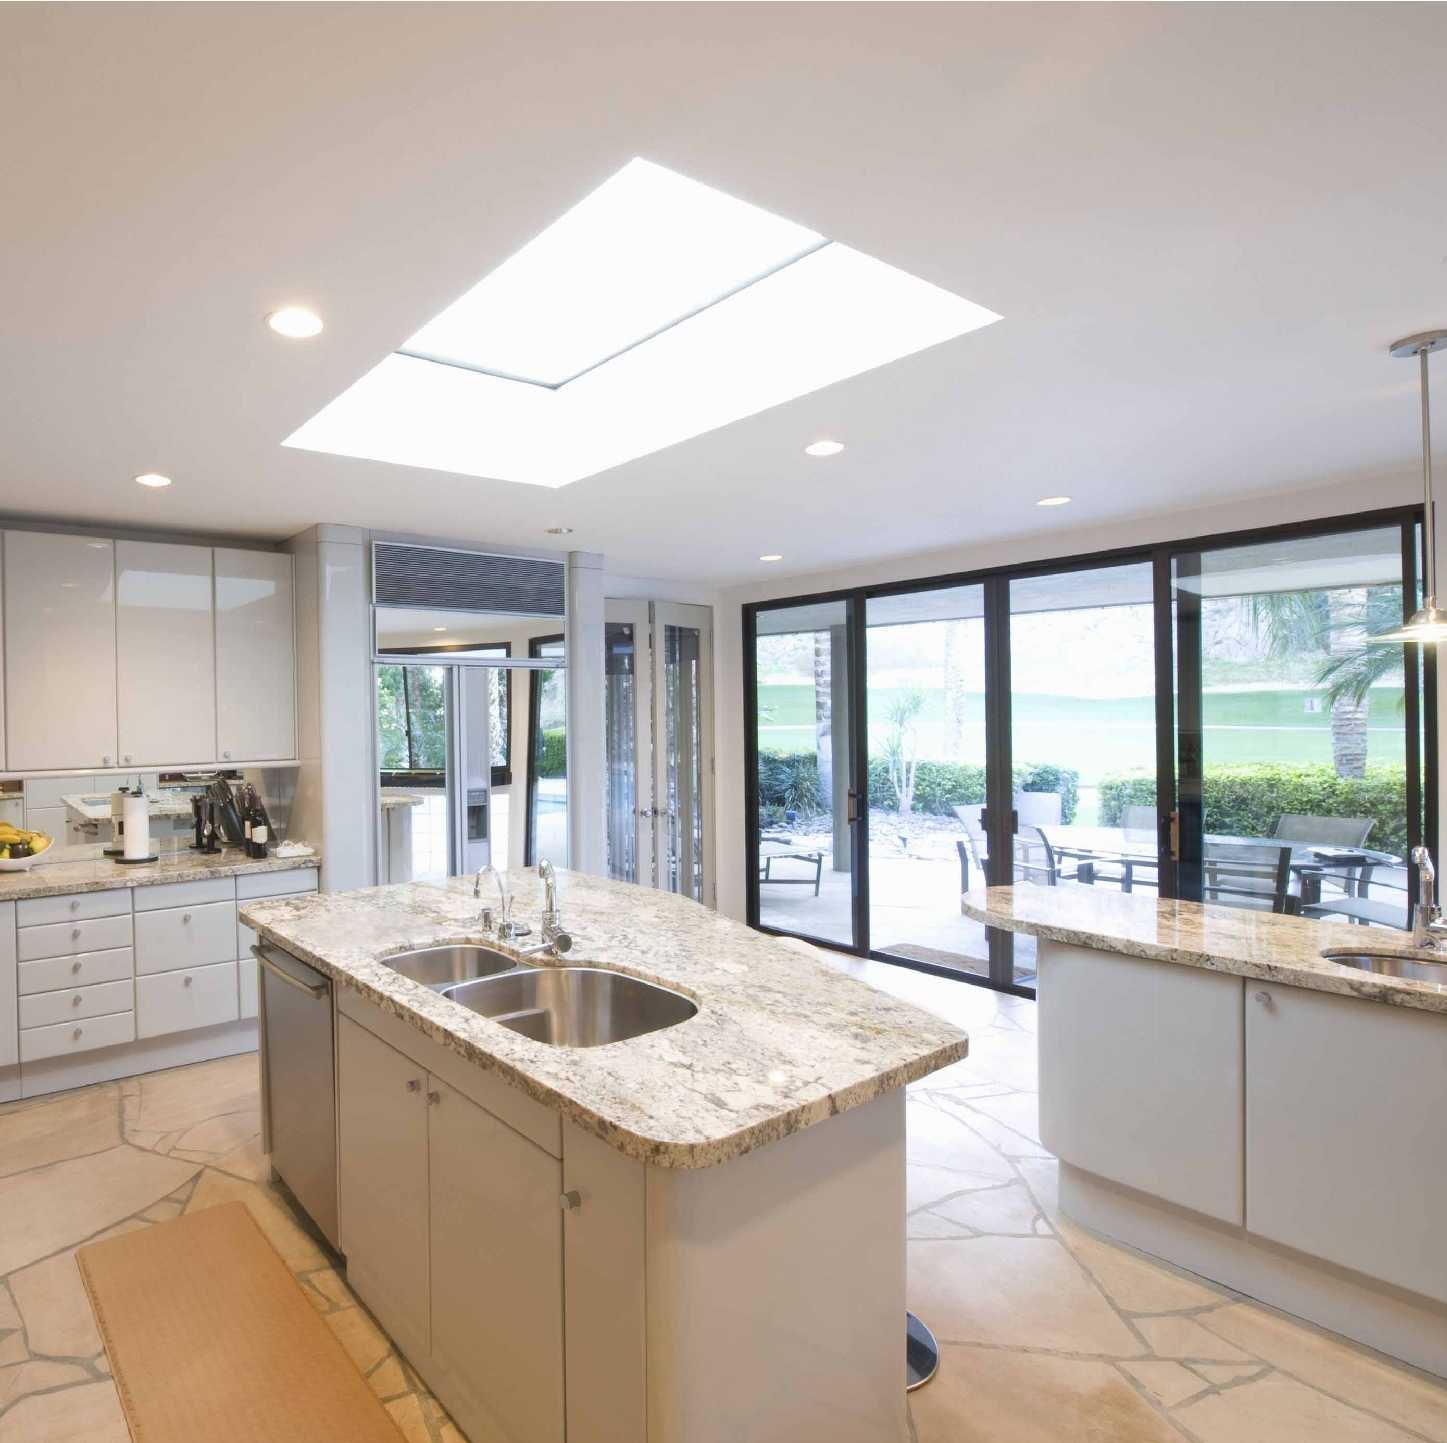 EcoGard Flat Roof light, Double Glazed, Electric Opening, 1,000mm x 1,000mm